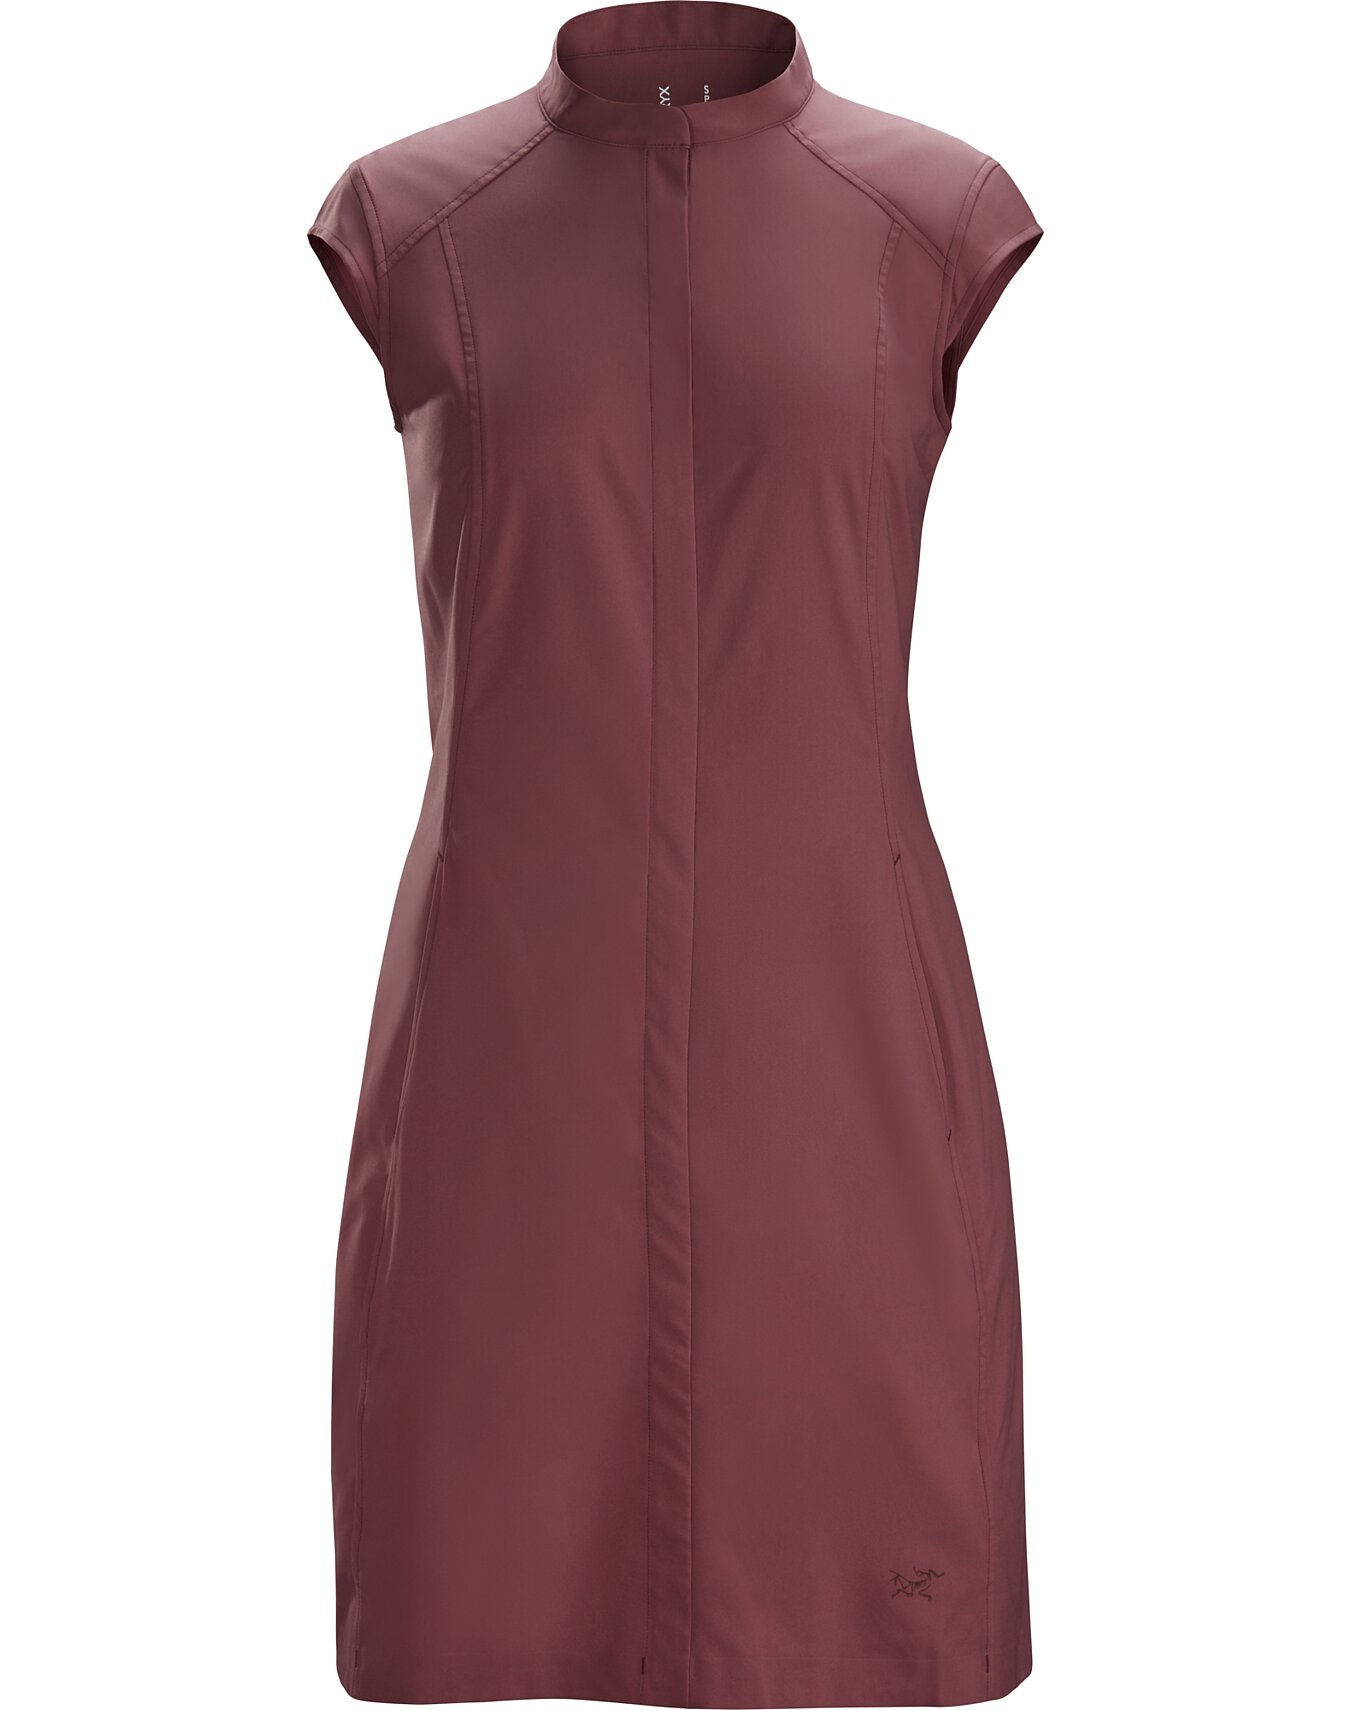 cala dress damen